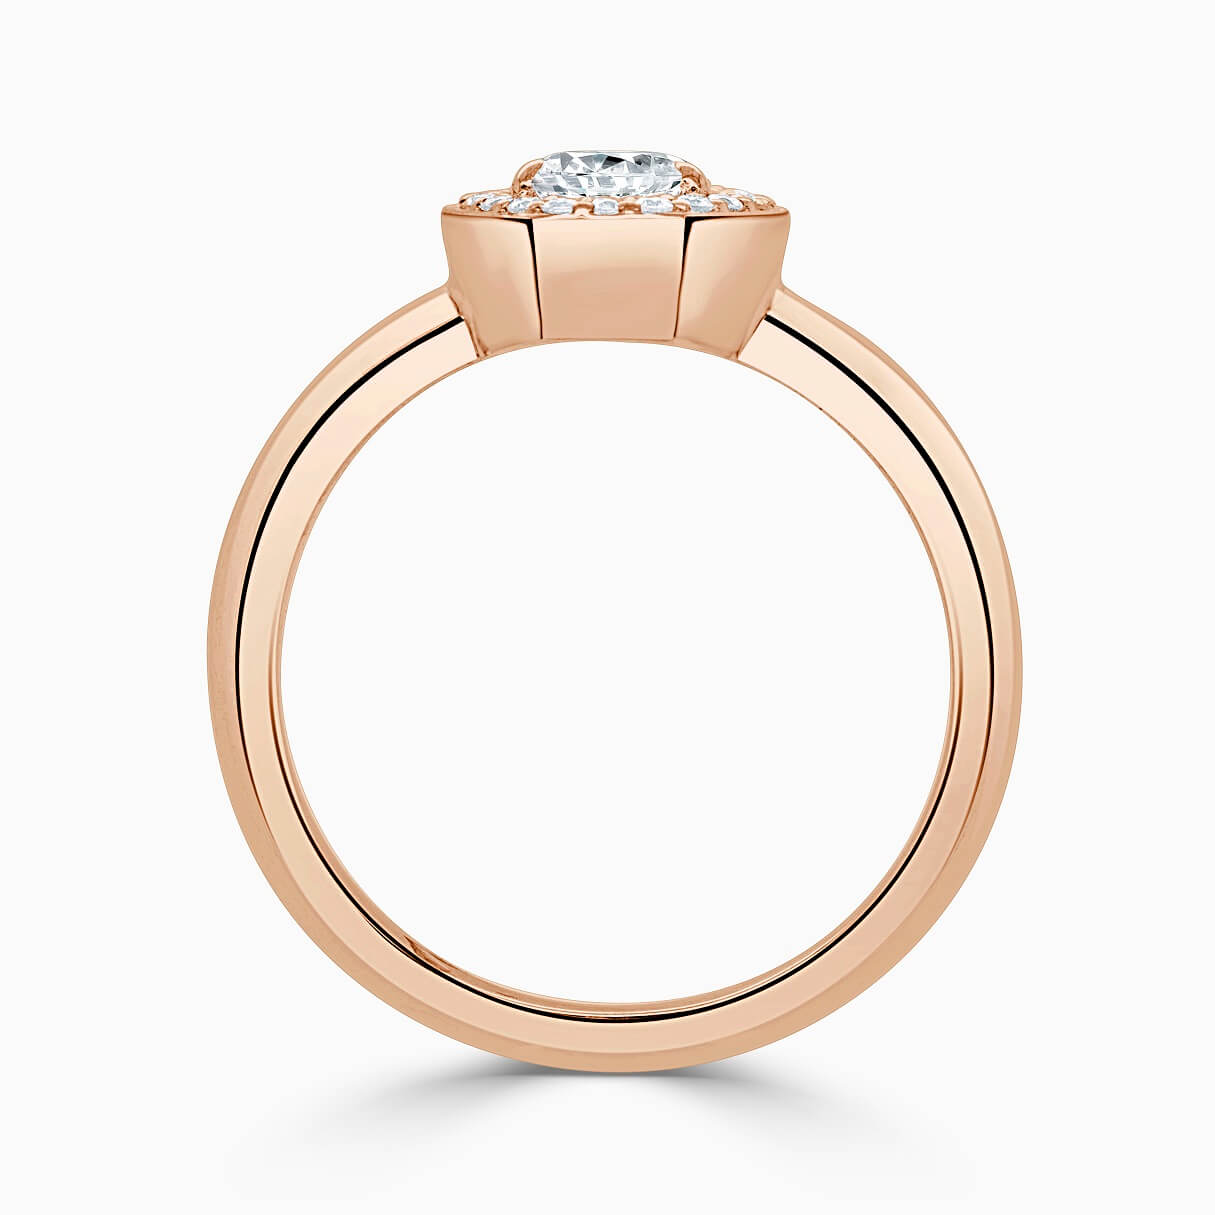 18ct Rose Gold Pear Shape Knife Edge Geo Halo Engagement Ring